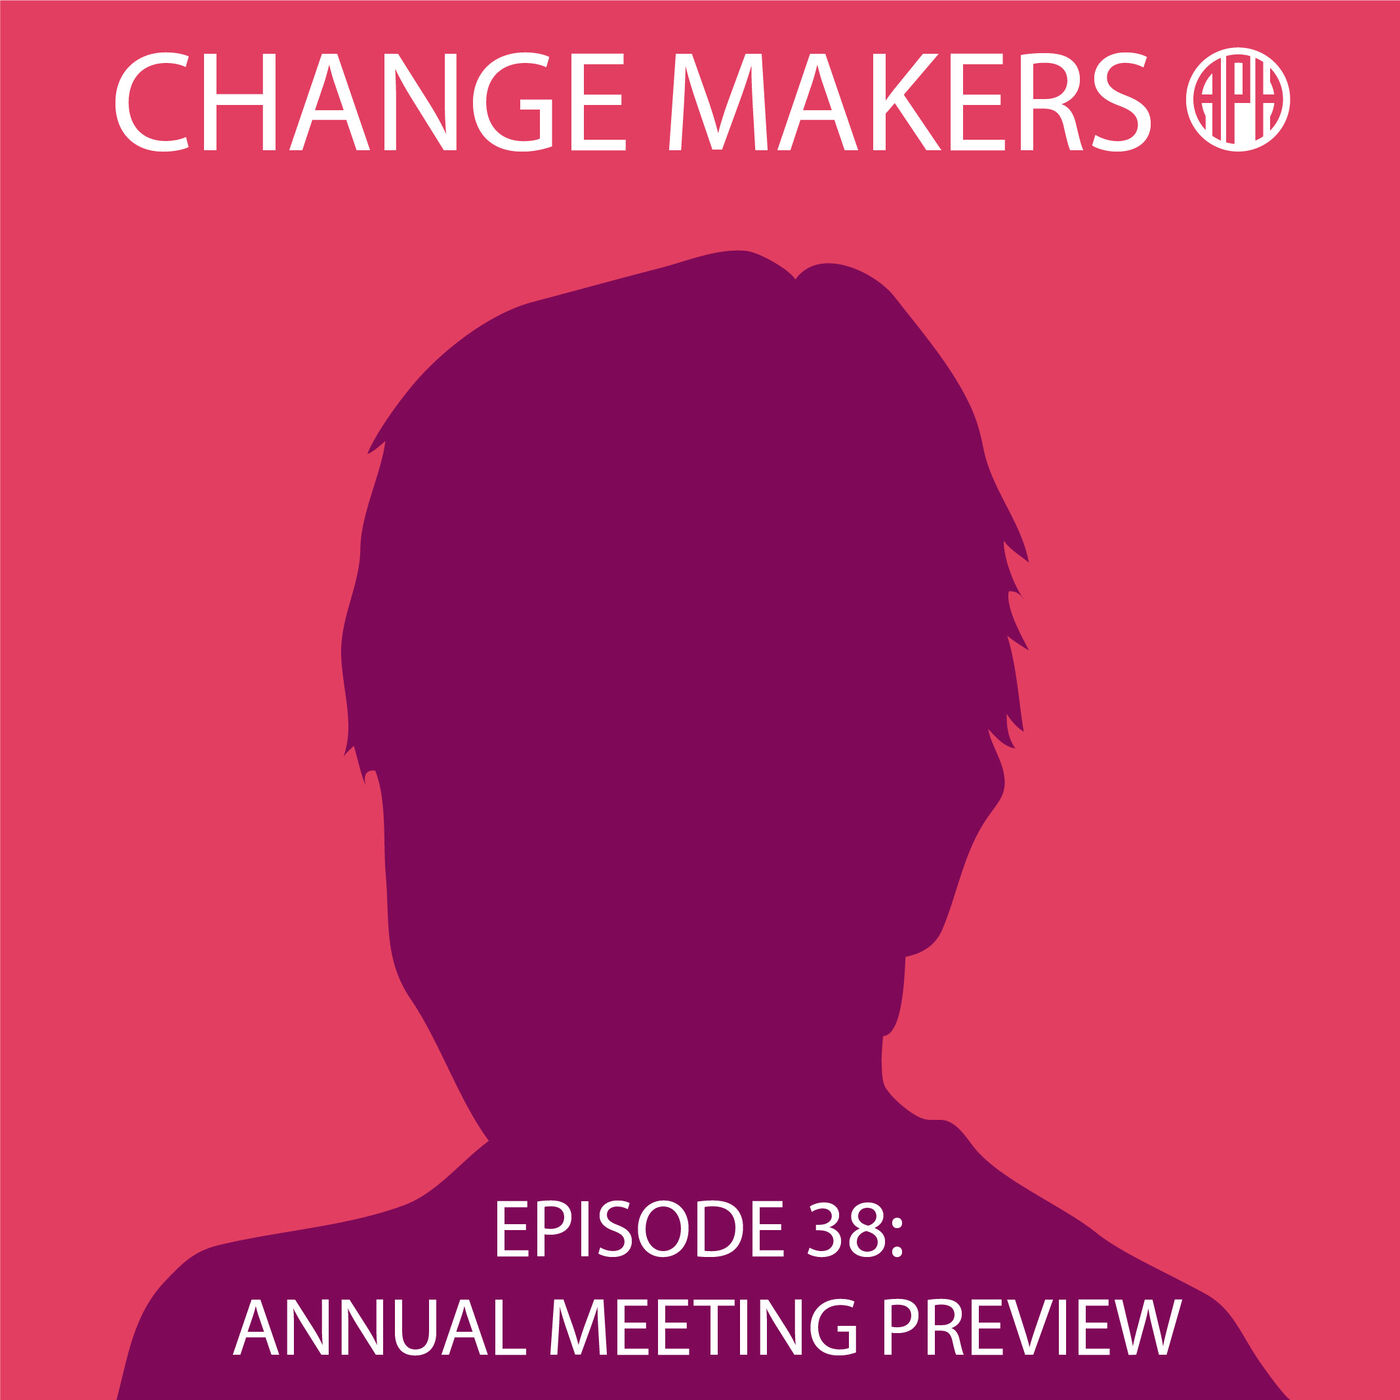 Annual Meeting Preview